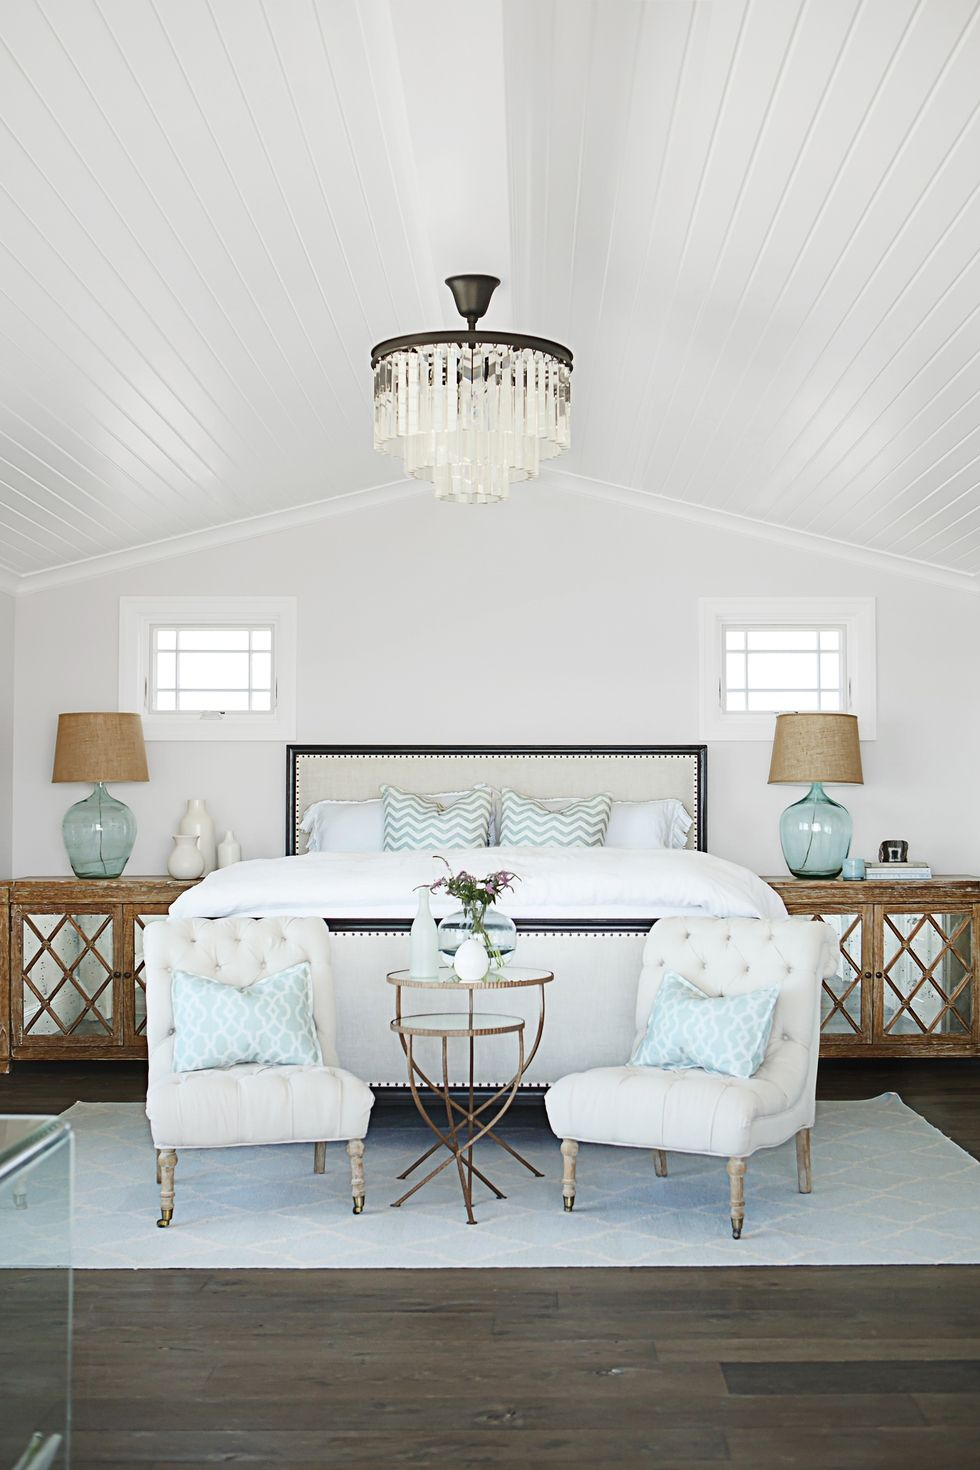 Make your bedroom a sea inspired retreat with these coastal bedroom design ideas. Fantastic End Of Bed Decor Ideas To Spice Up The Bedroom